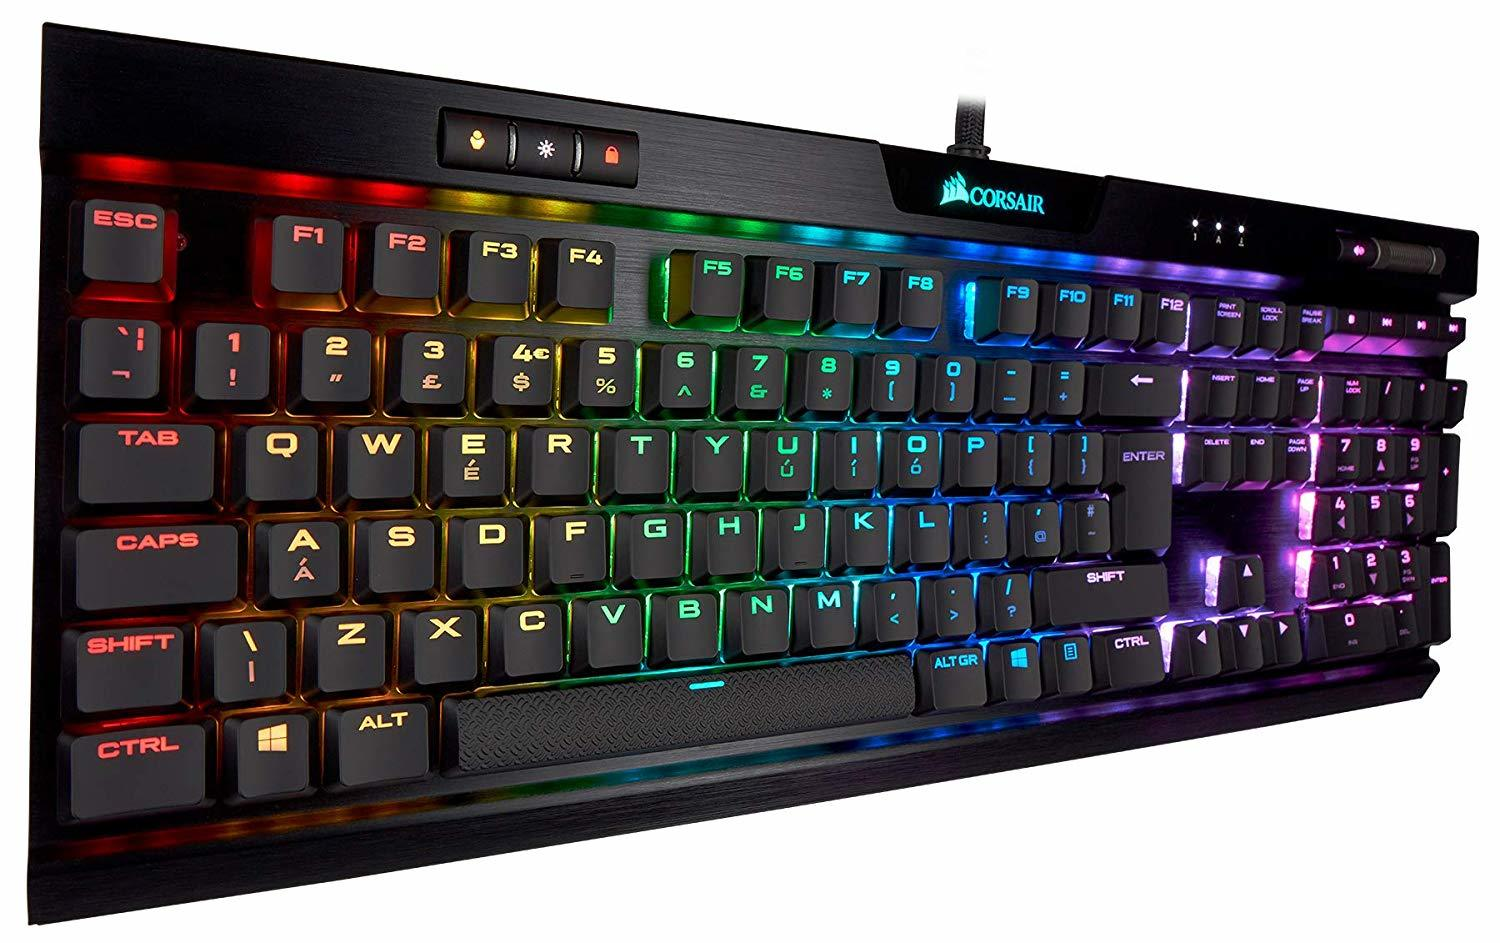 Corsair K70 RGB MK.2 Low Profile Mechanical Gaming Keyboard (Cherry MX Red) - PC Games